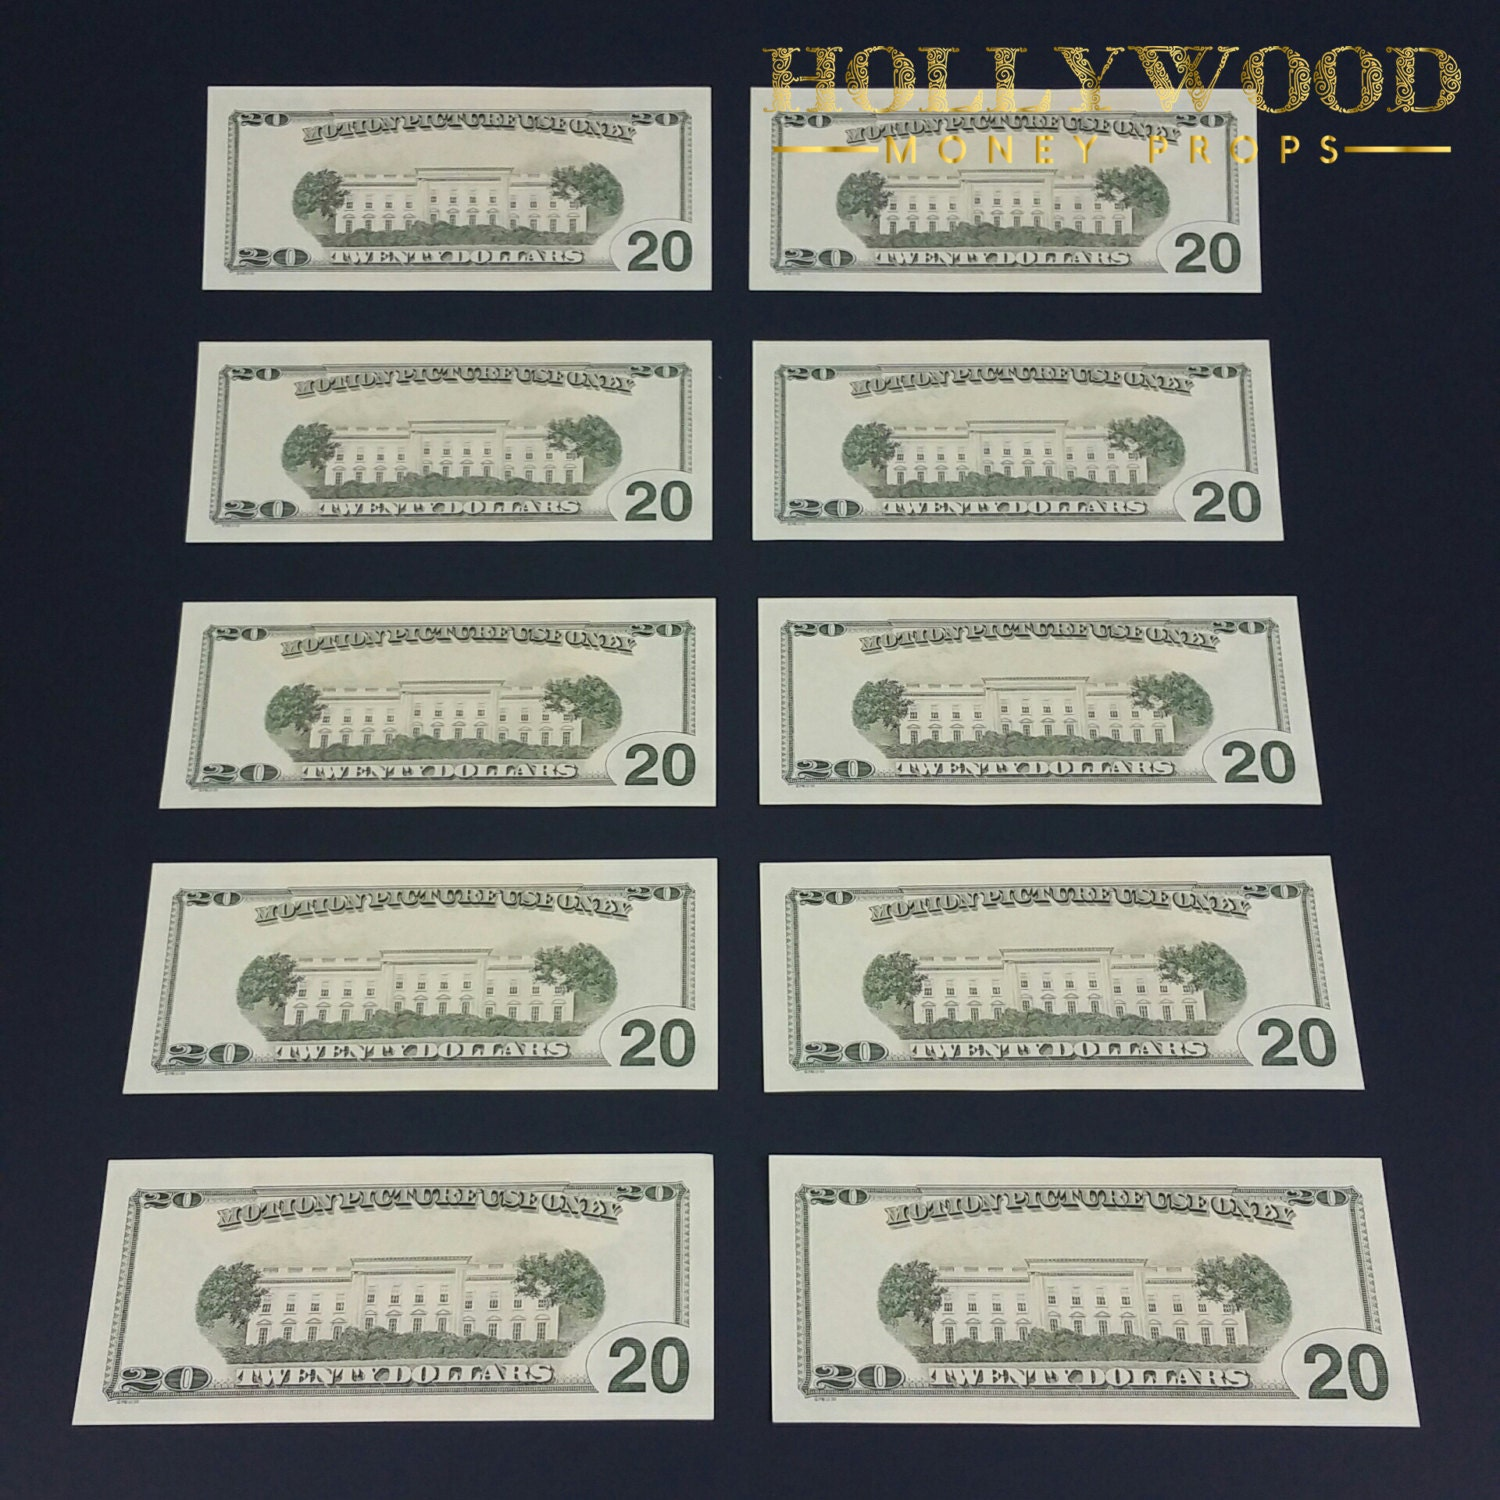 worksheet 200 Dollar Bill 20 dollar bill x10 200 dollars new series full print best movie industry quality prop money for play prank gift double sided to